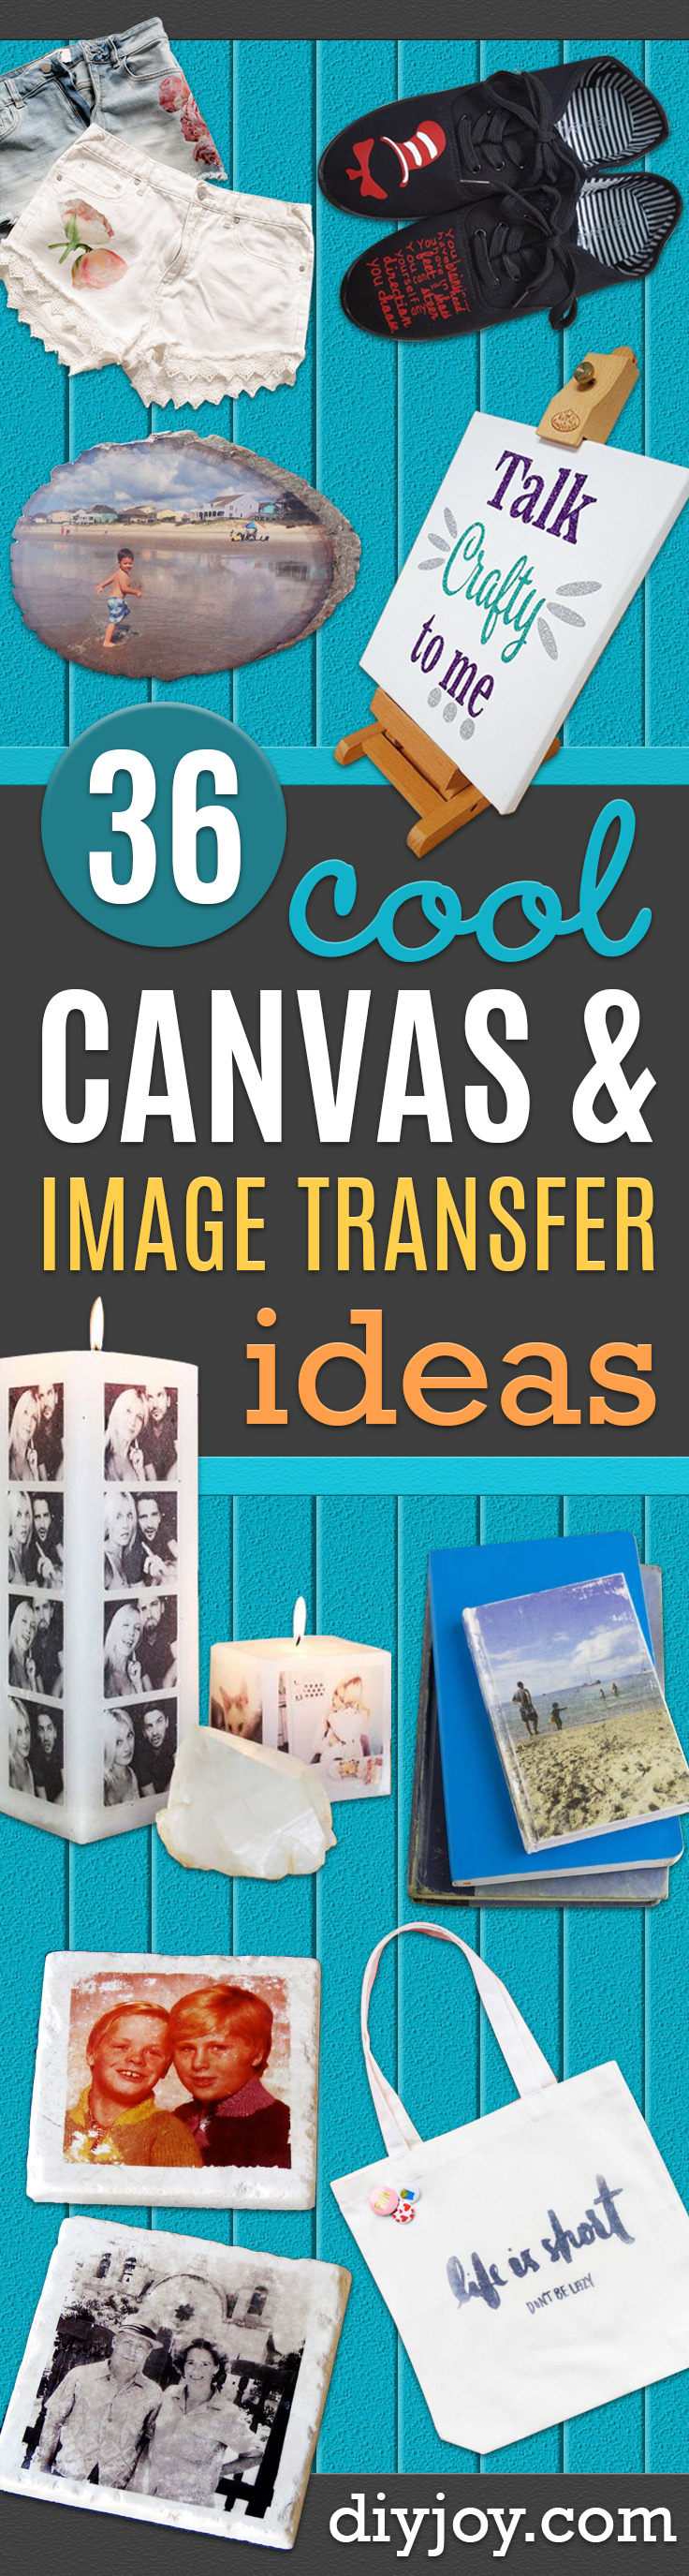 How to Transfer an Image to Canvas- Cheap DIY Christmas Gifts - Creative Gifts to Make With Photographs - Fun Ways to Display Instagram Photos - Handmade Presents for Friends - Unique Gift Ideas to Make for Birthdays, Holidays, Friends and Family, Mom and Dad